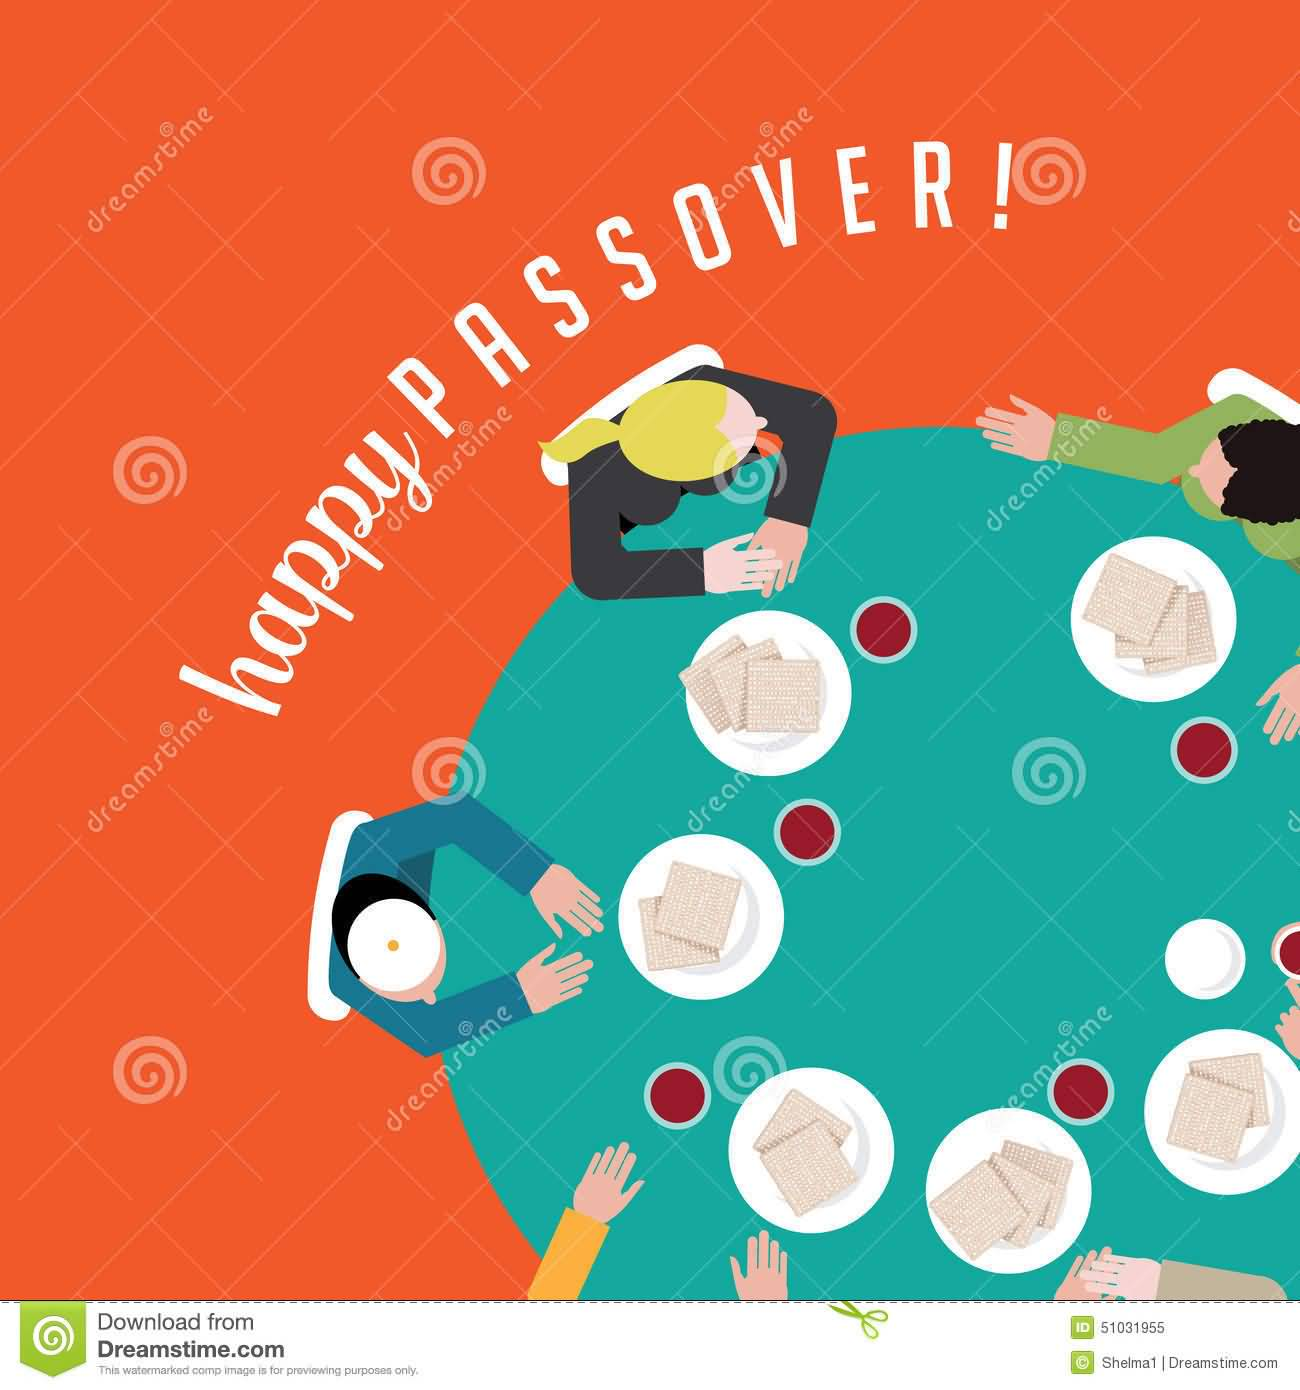 Happy passover greetings wishes picture nicewishes 32 happy passover wishes m4hsunfo